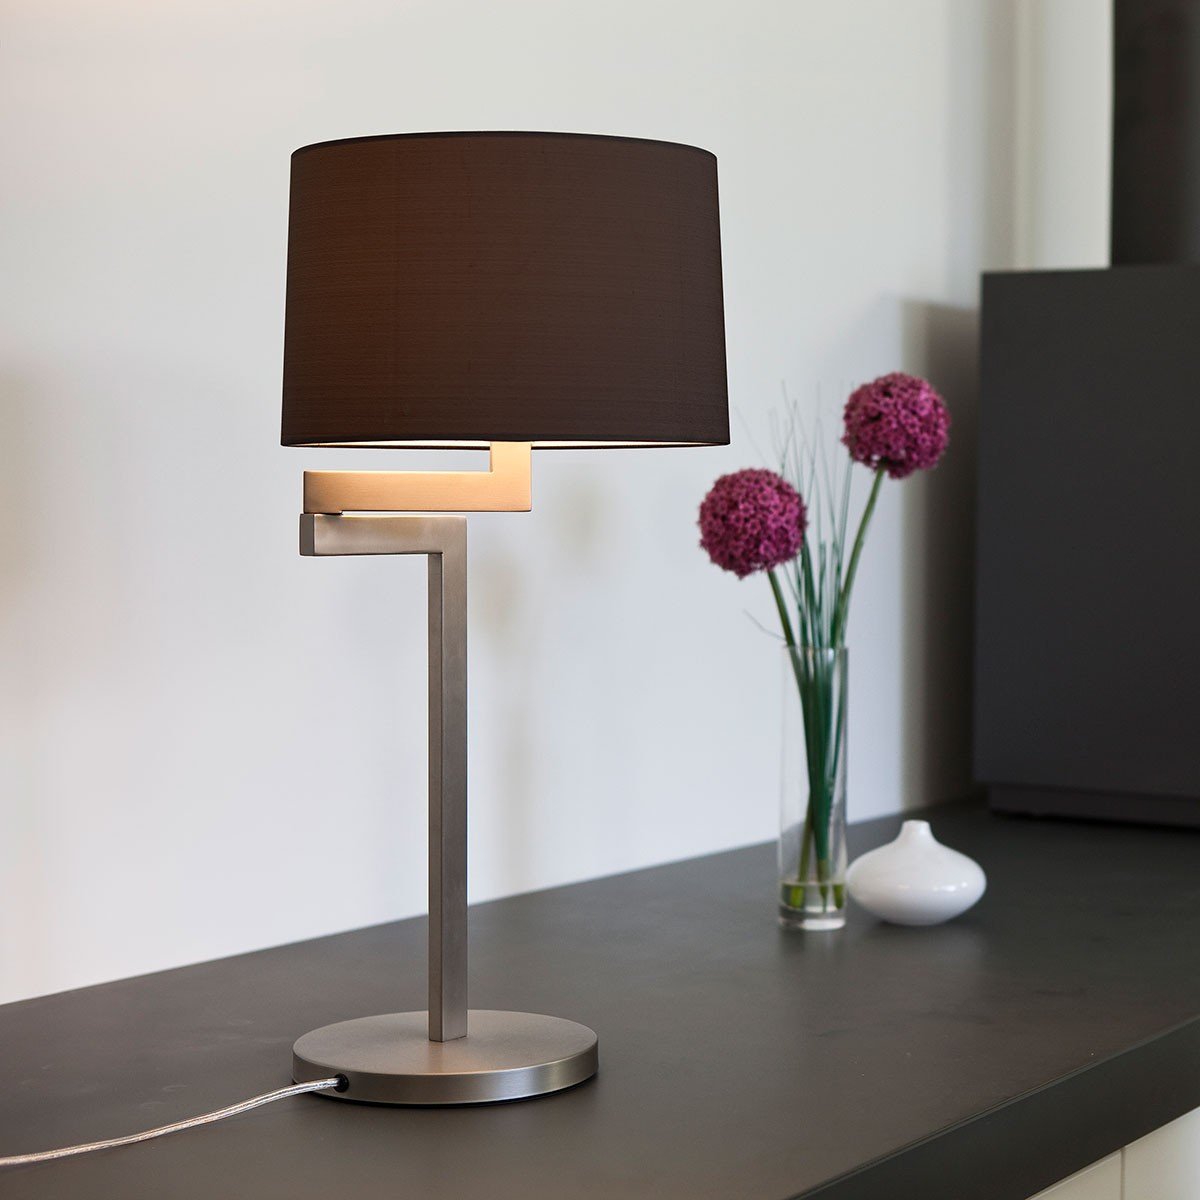 Astro momo table brushed stainless steel lamp at uk